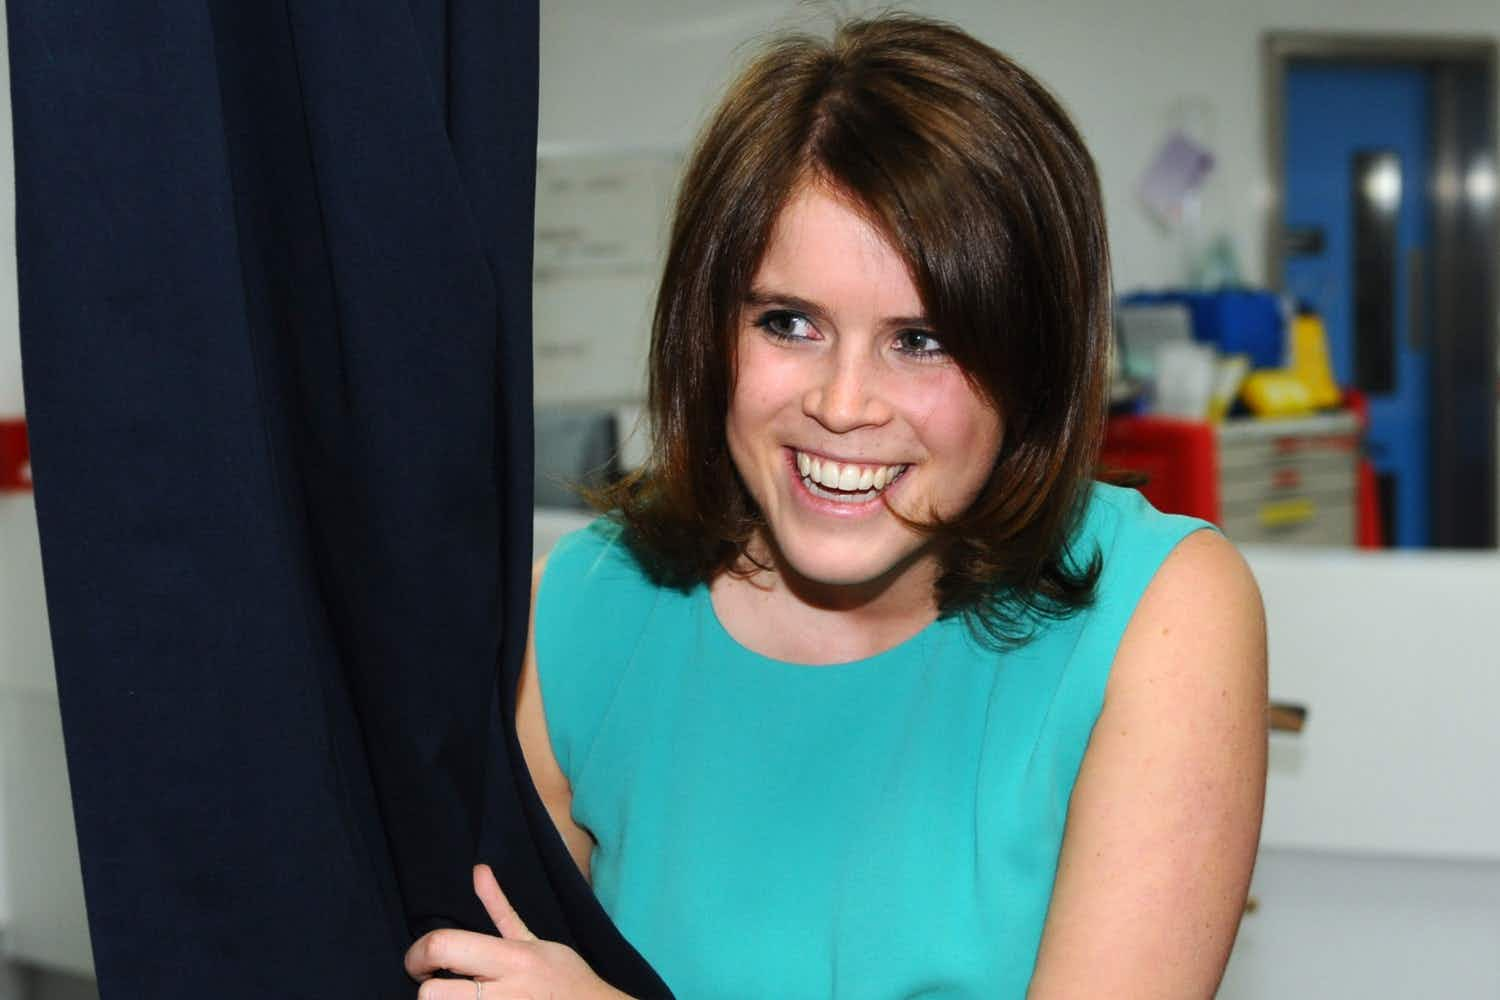 Why an Instagram photo landed Queen Elizabeth's grand-daughter, Princess Eugenie, in trouble